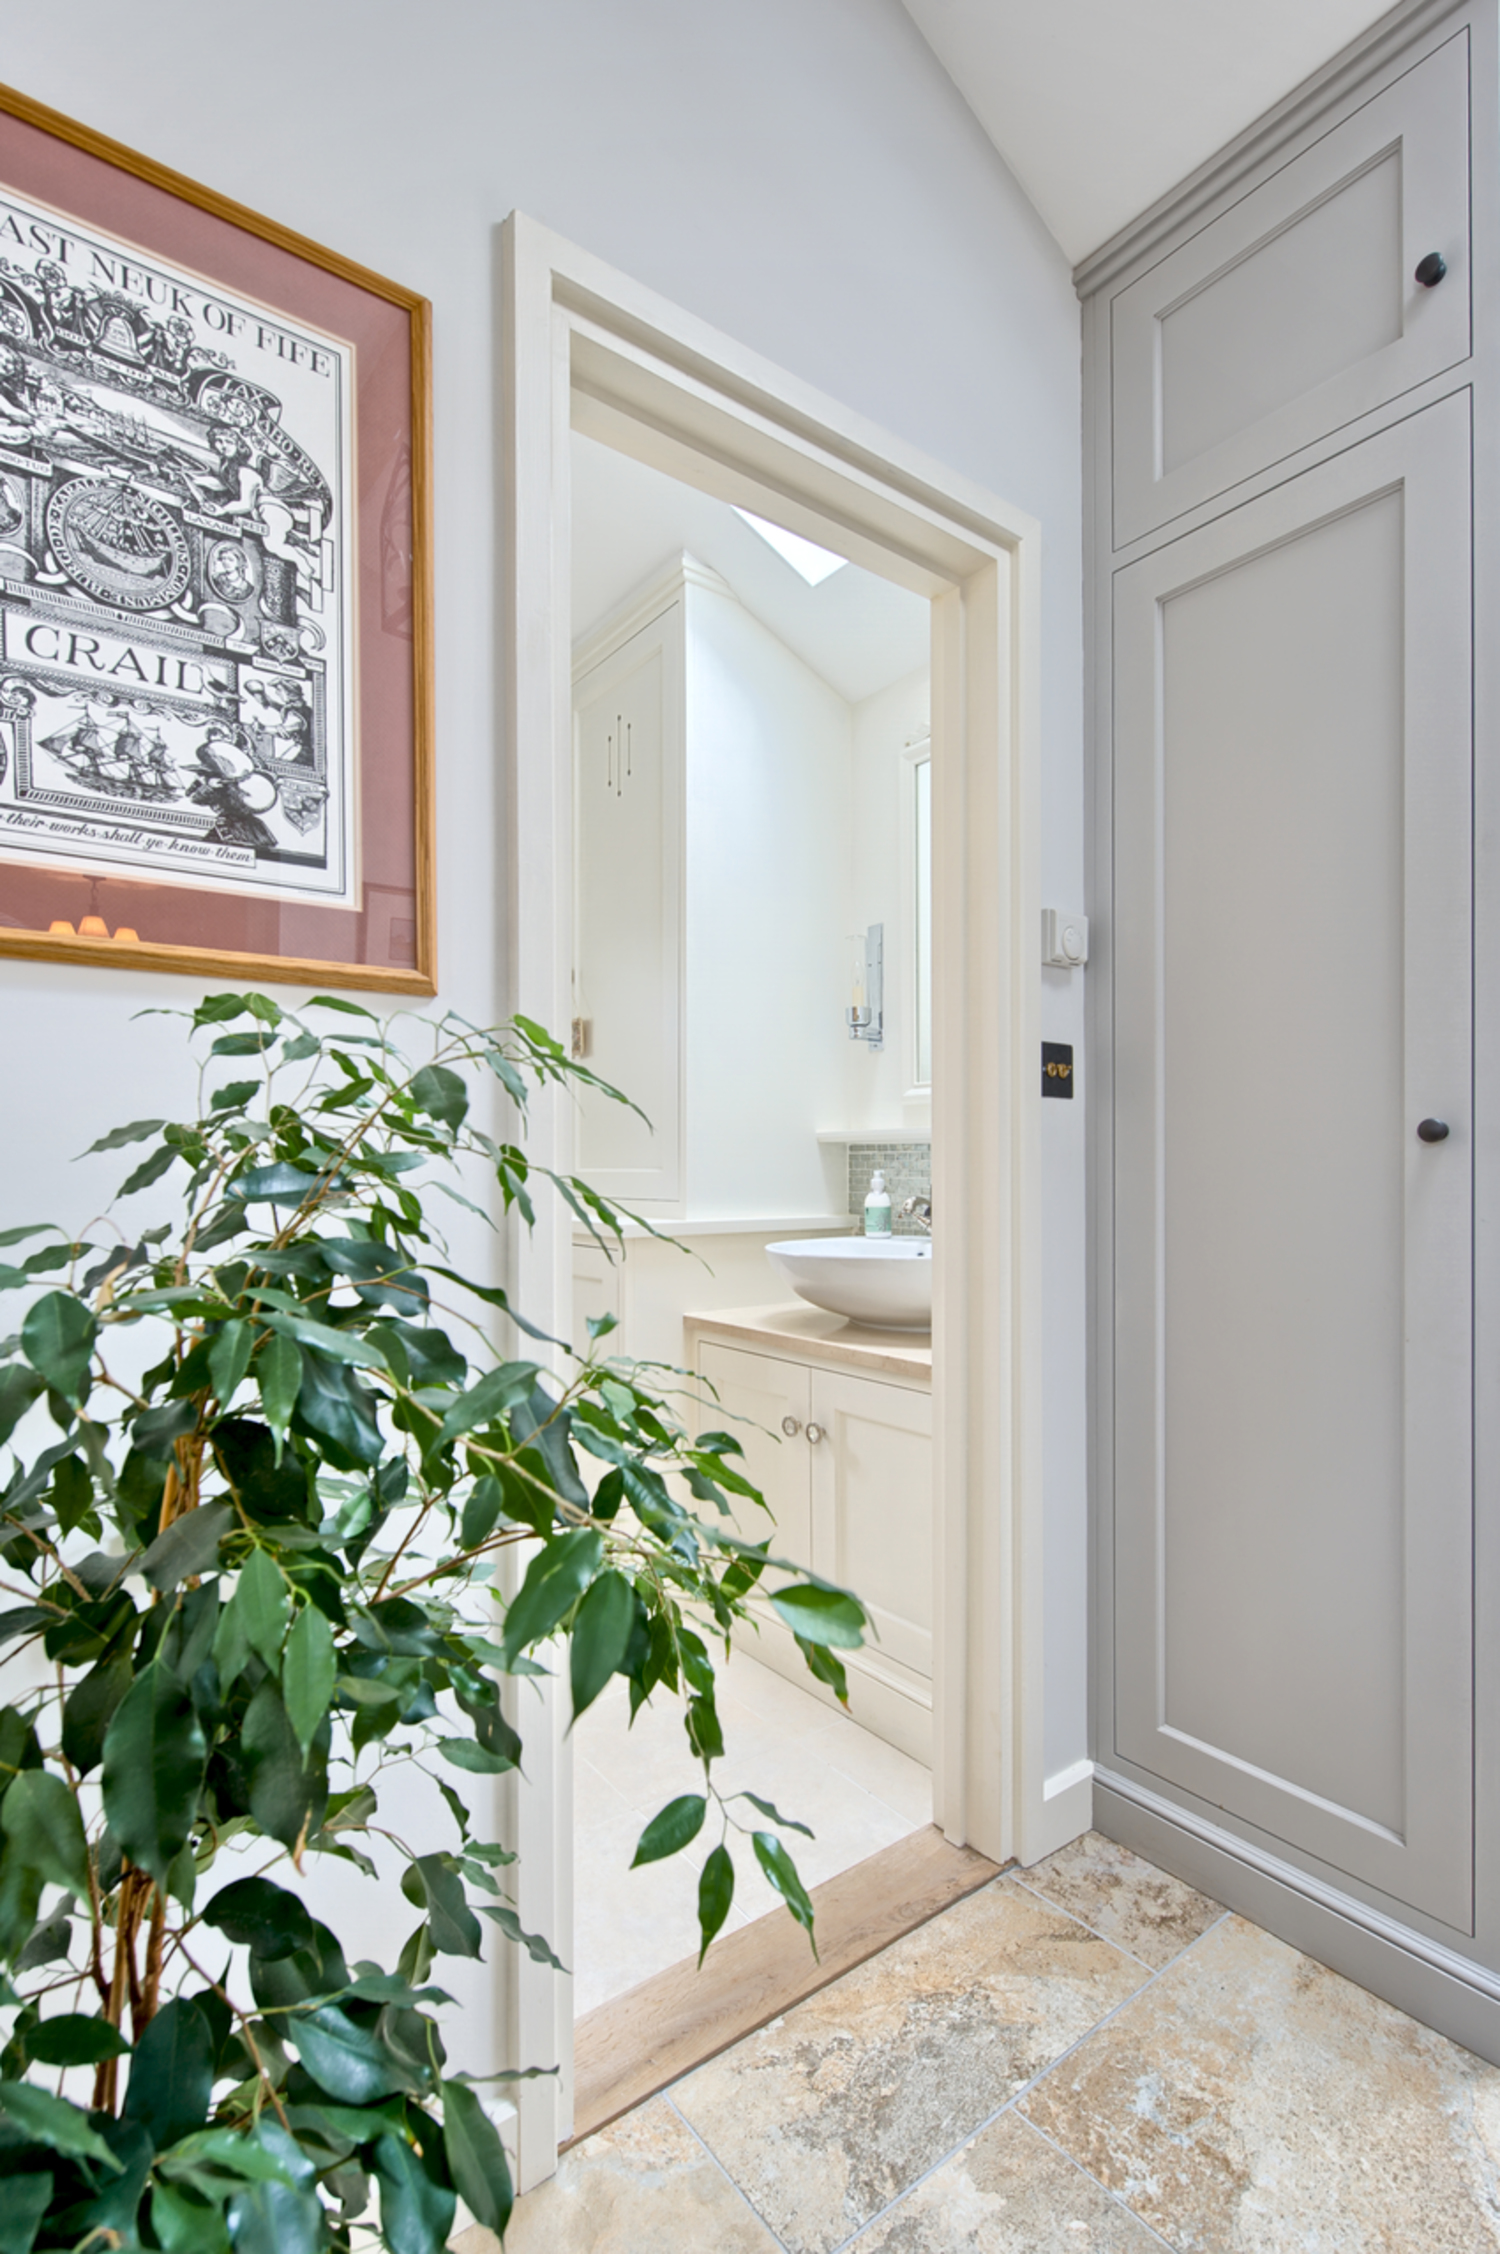 Downstairs bathroom plant of a house redesign by Harvey Norman Architects Cambridge